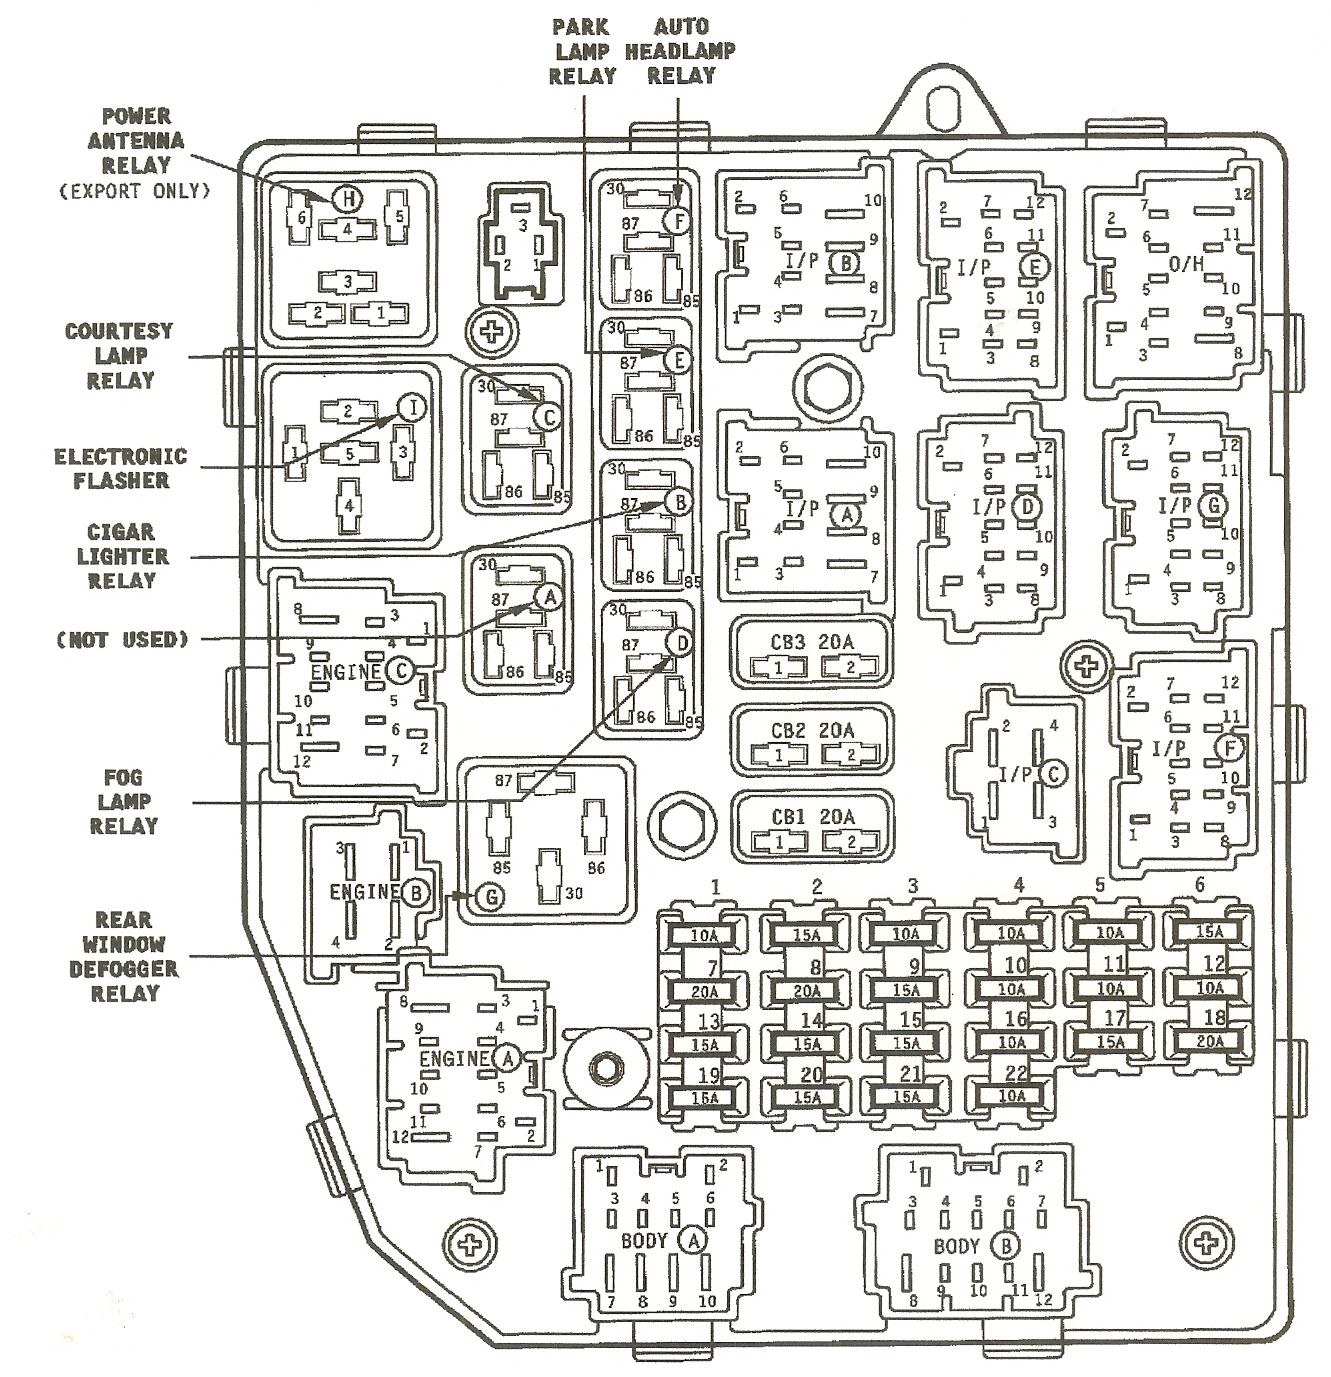 [DIAGRAM_3NM]  Jeep Zj Fuse Diagram | Printable Worksheets and Activities for Teachers,  Parents, Tutors and Homeschool Families | Fuse Box For 1996 Jeep Grand Cherokee |  | indymoves.org